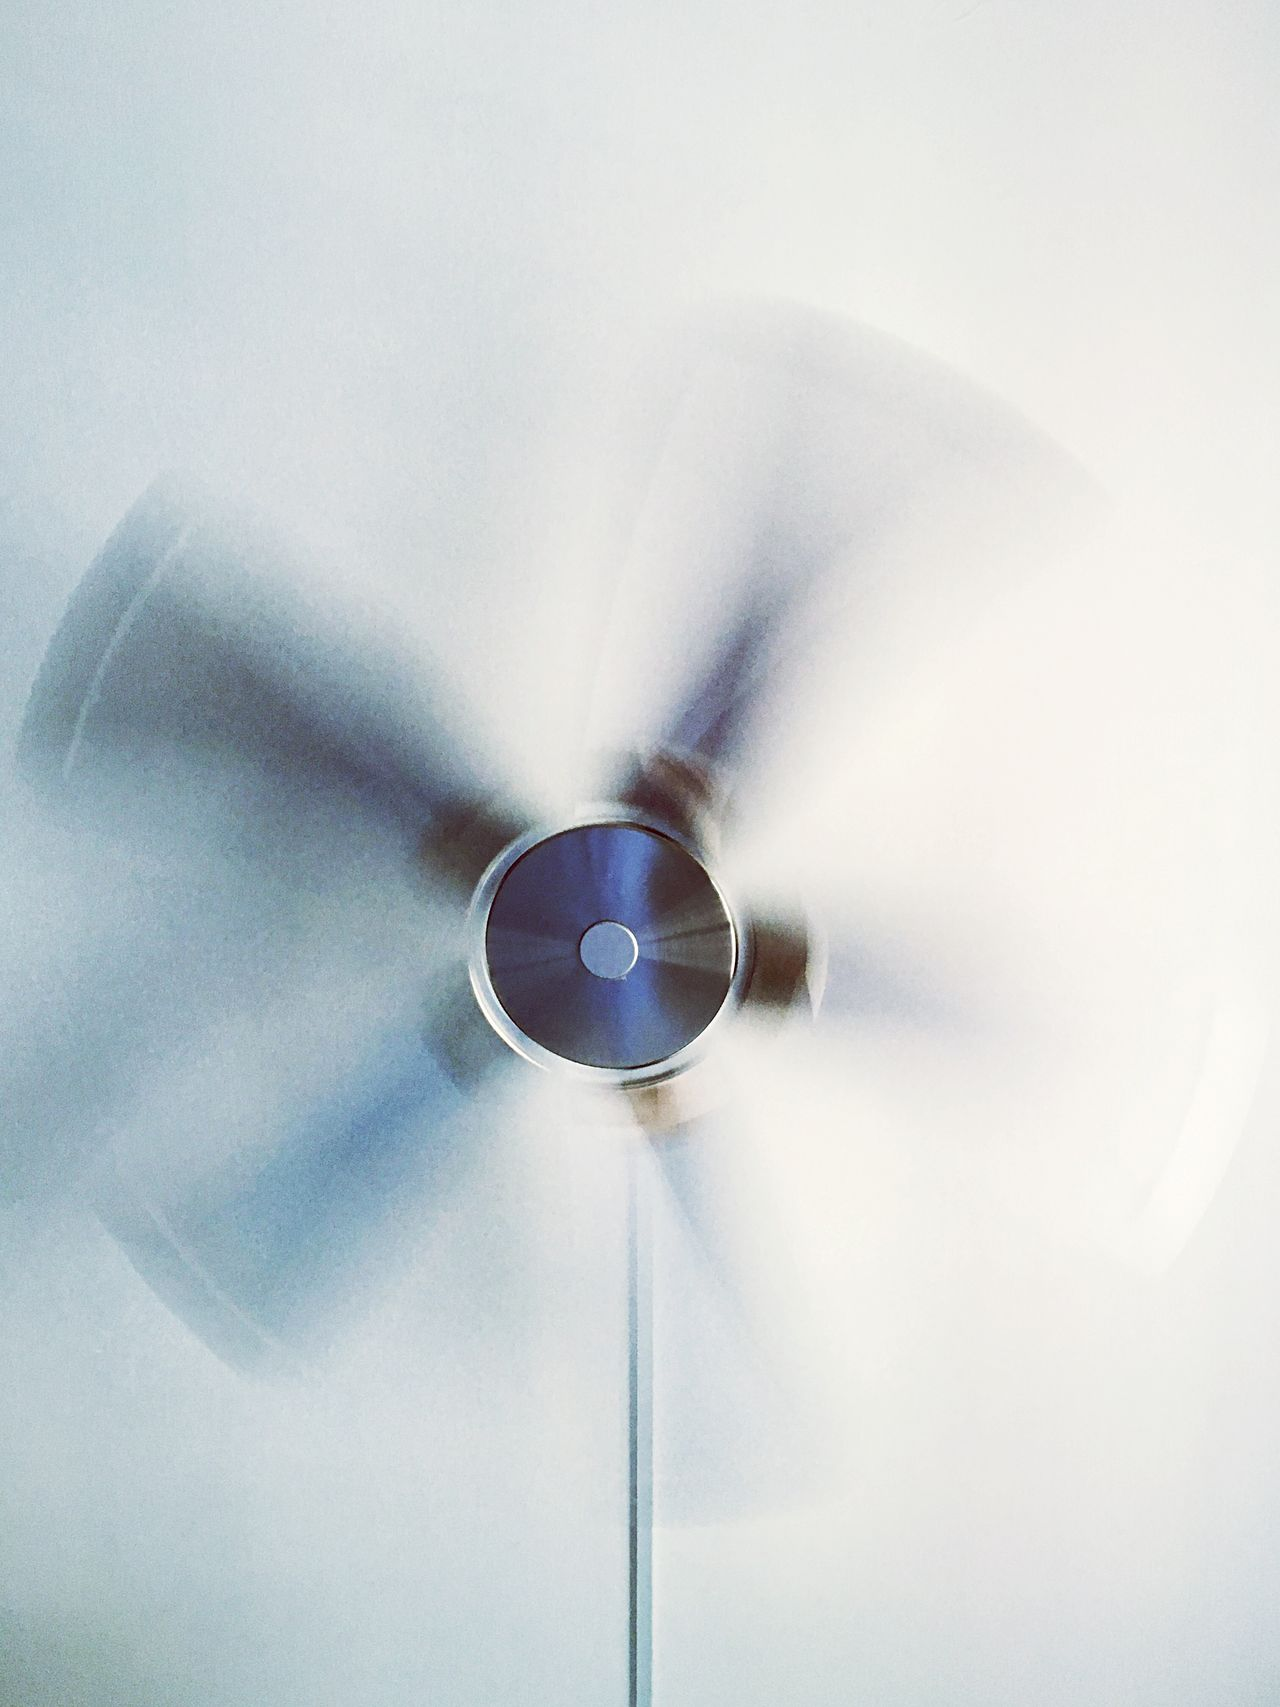 A big fan of photography Fan Windmill Blurred Motion Motion Spinning Low Angle View Ceiling Perspective Faded EyeEmNewHere